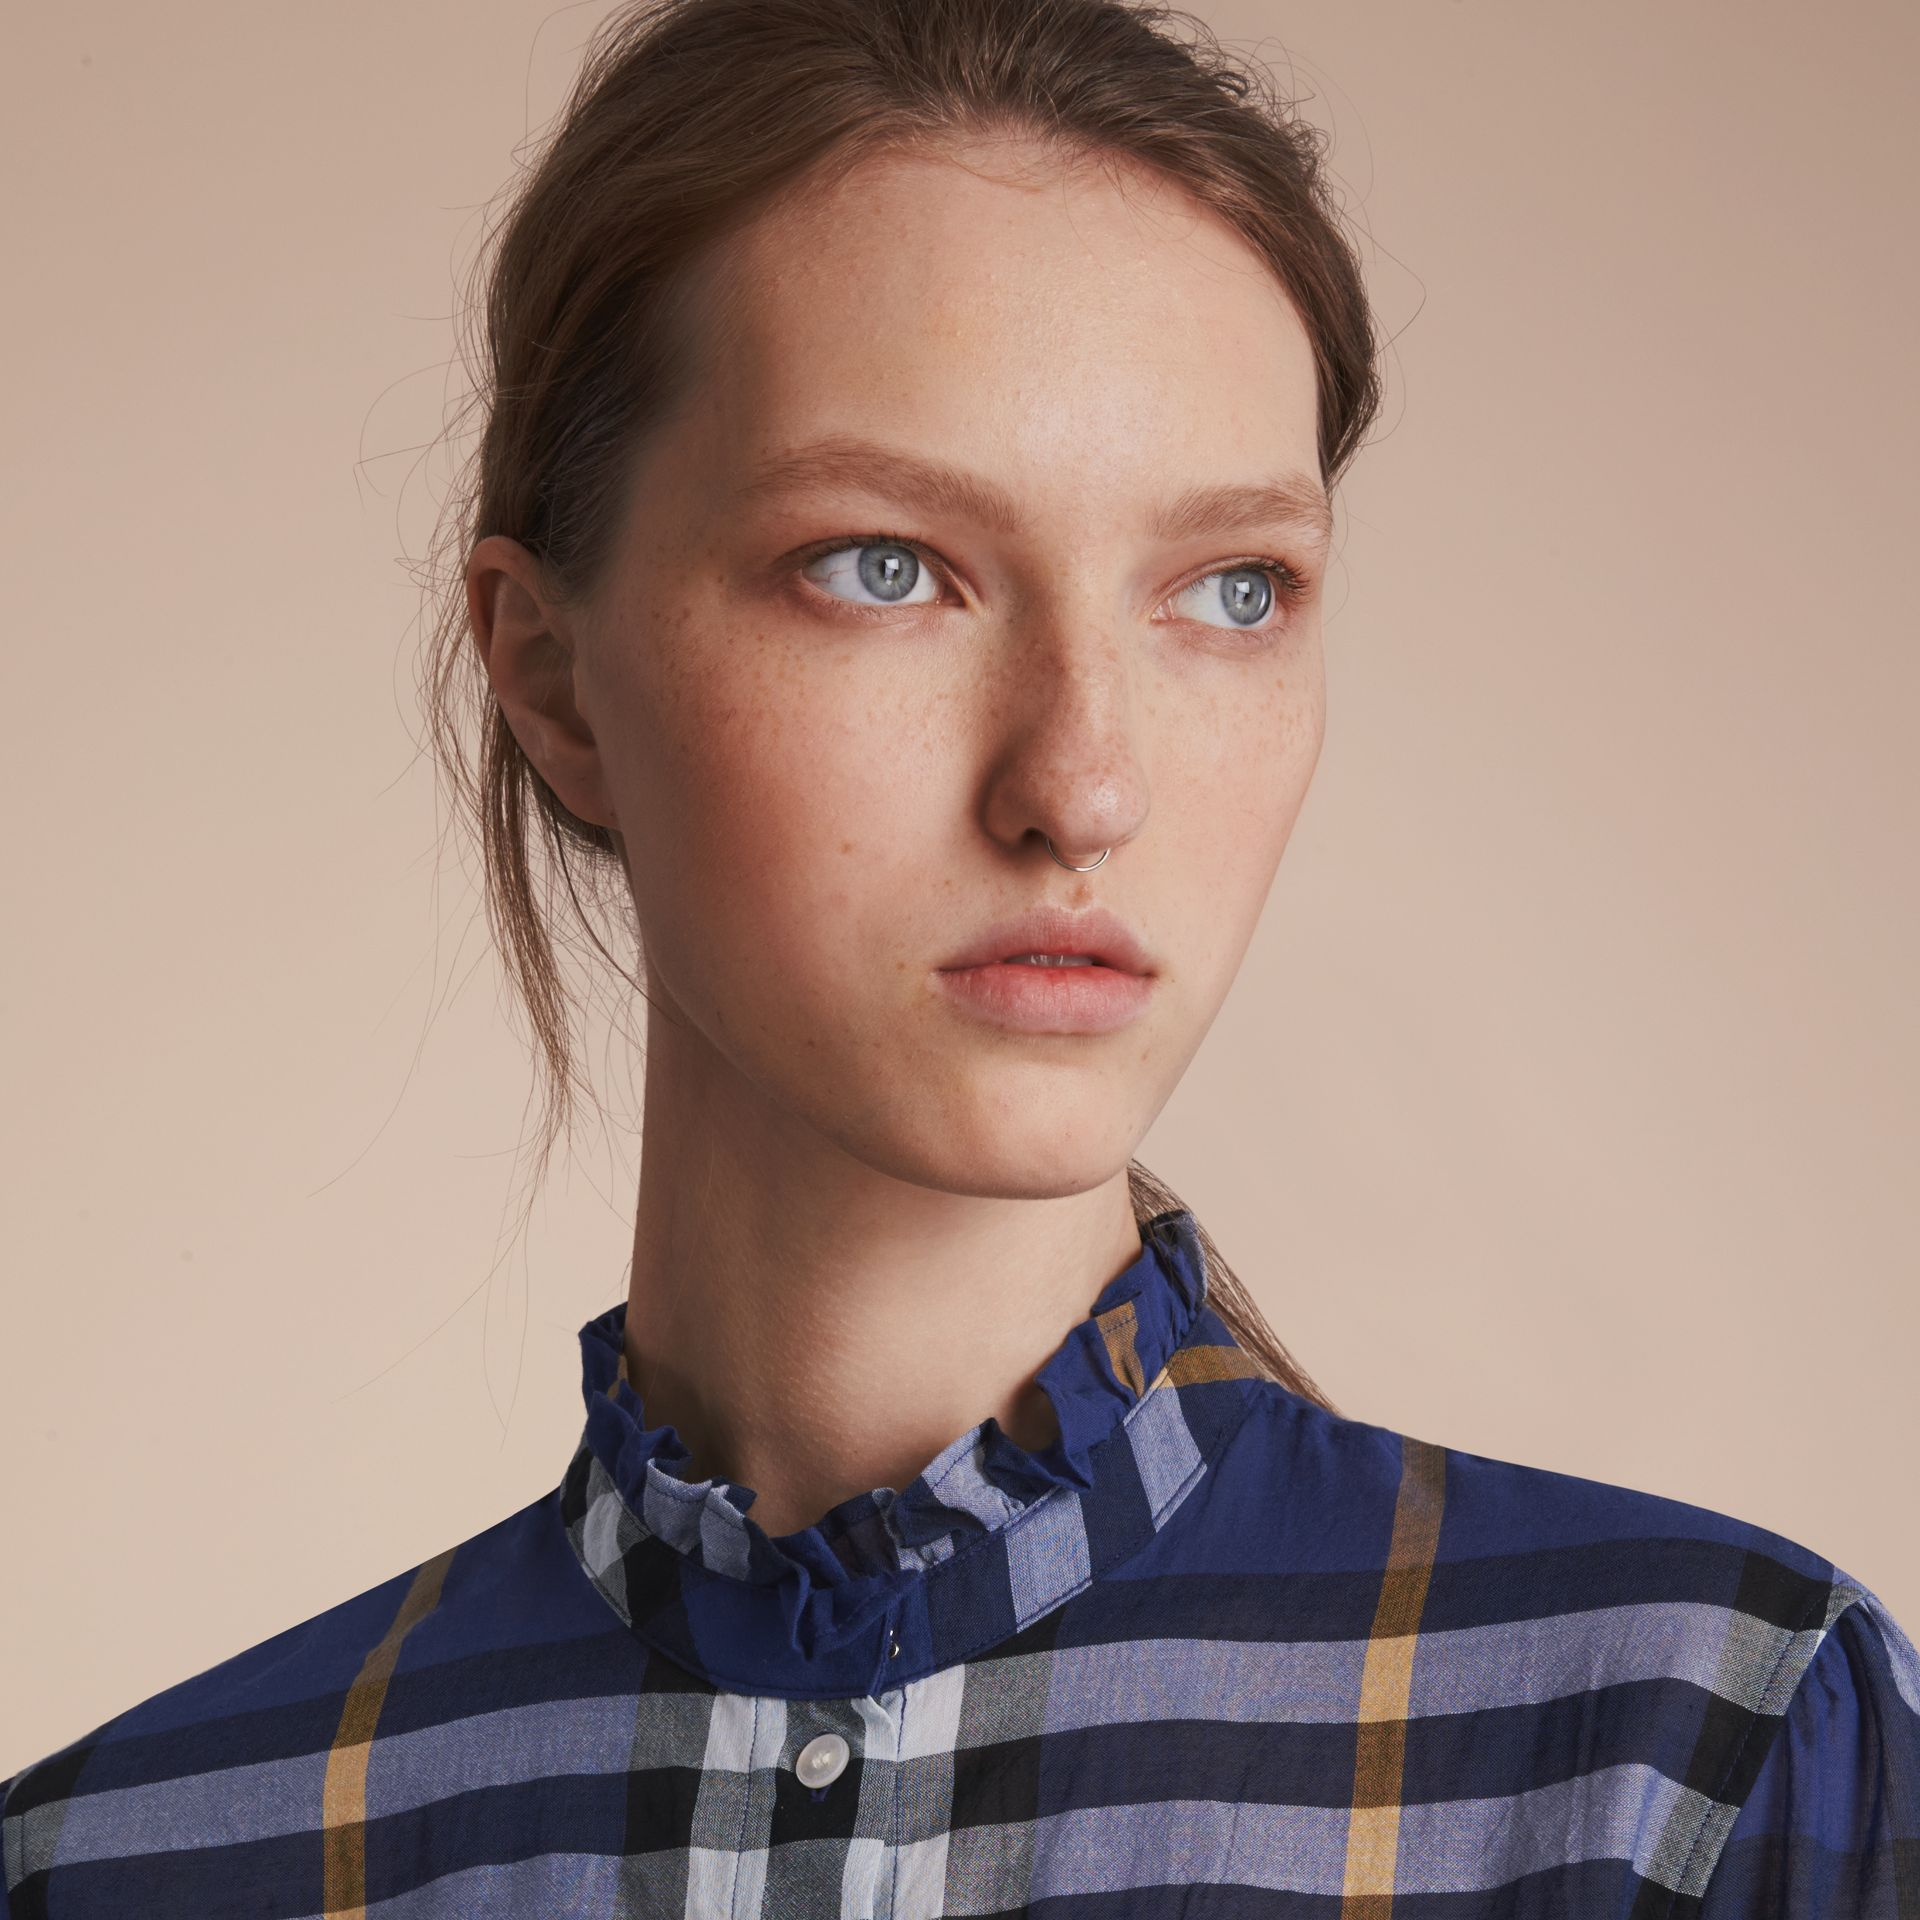 Ruffle Detail Check Cotton Shirt in Lapis Blue - Women | Burberry Australia - gallery image 5